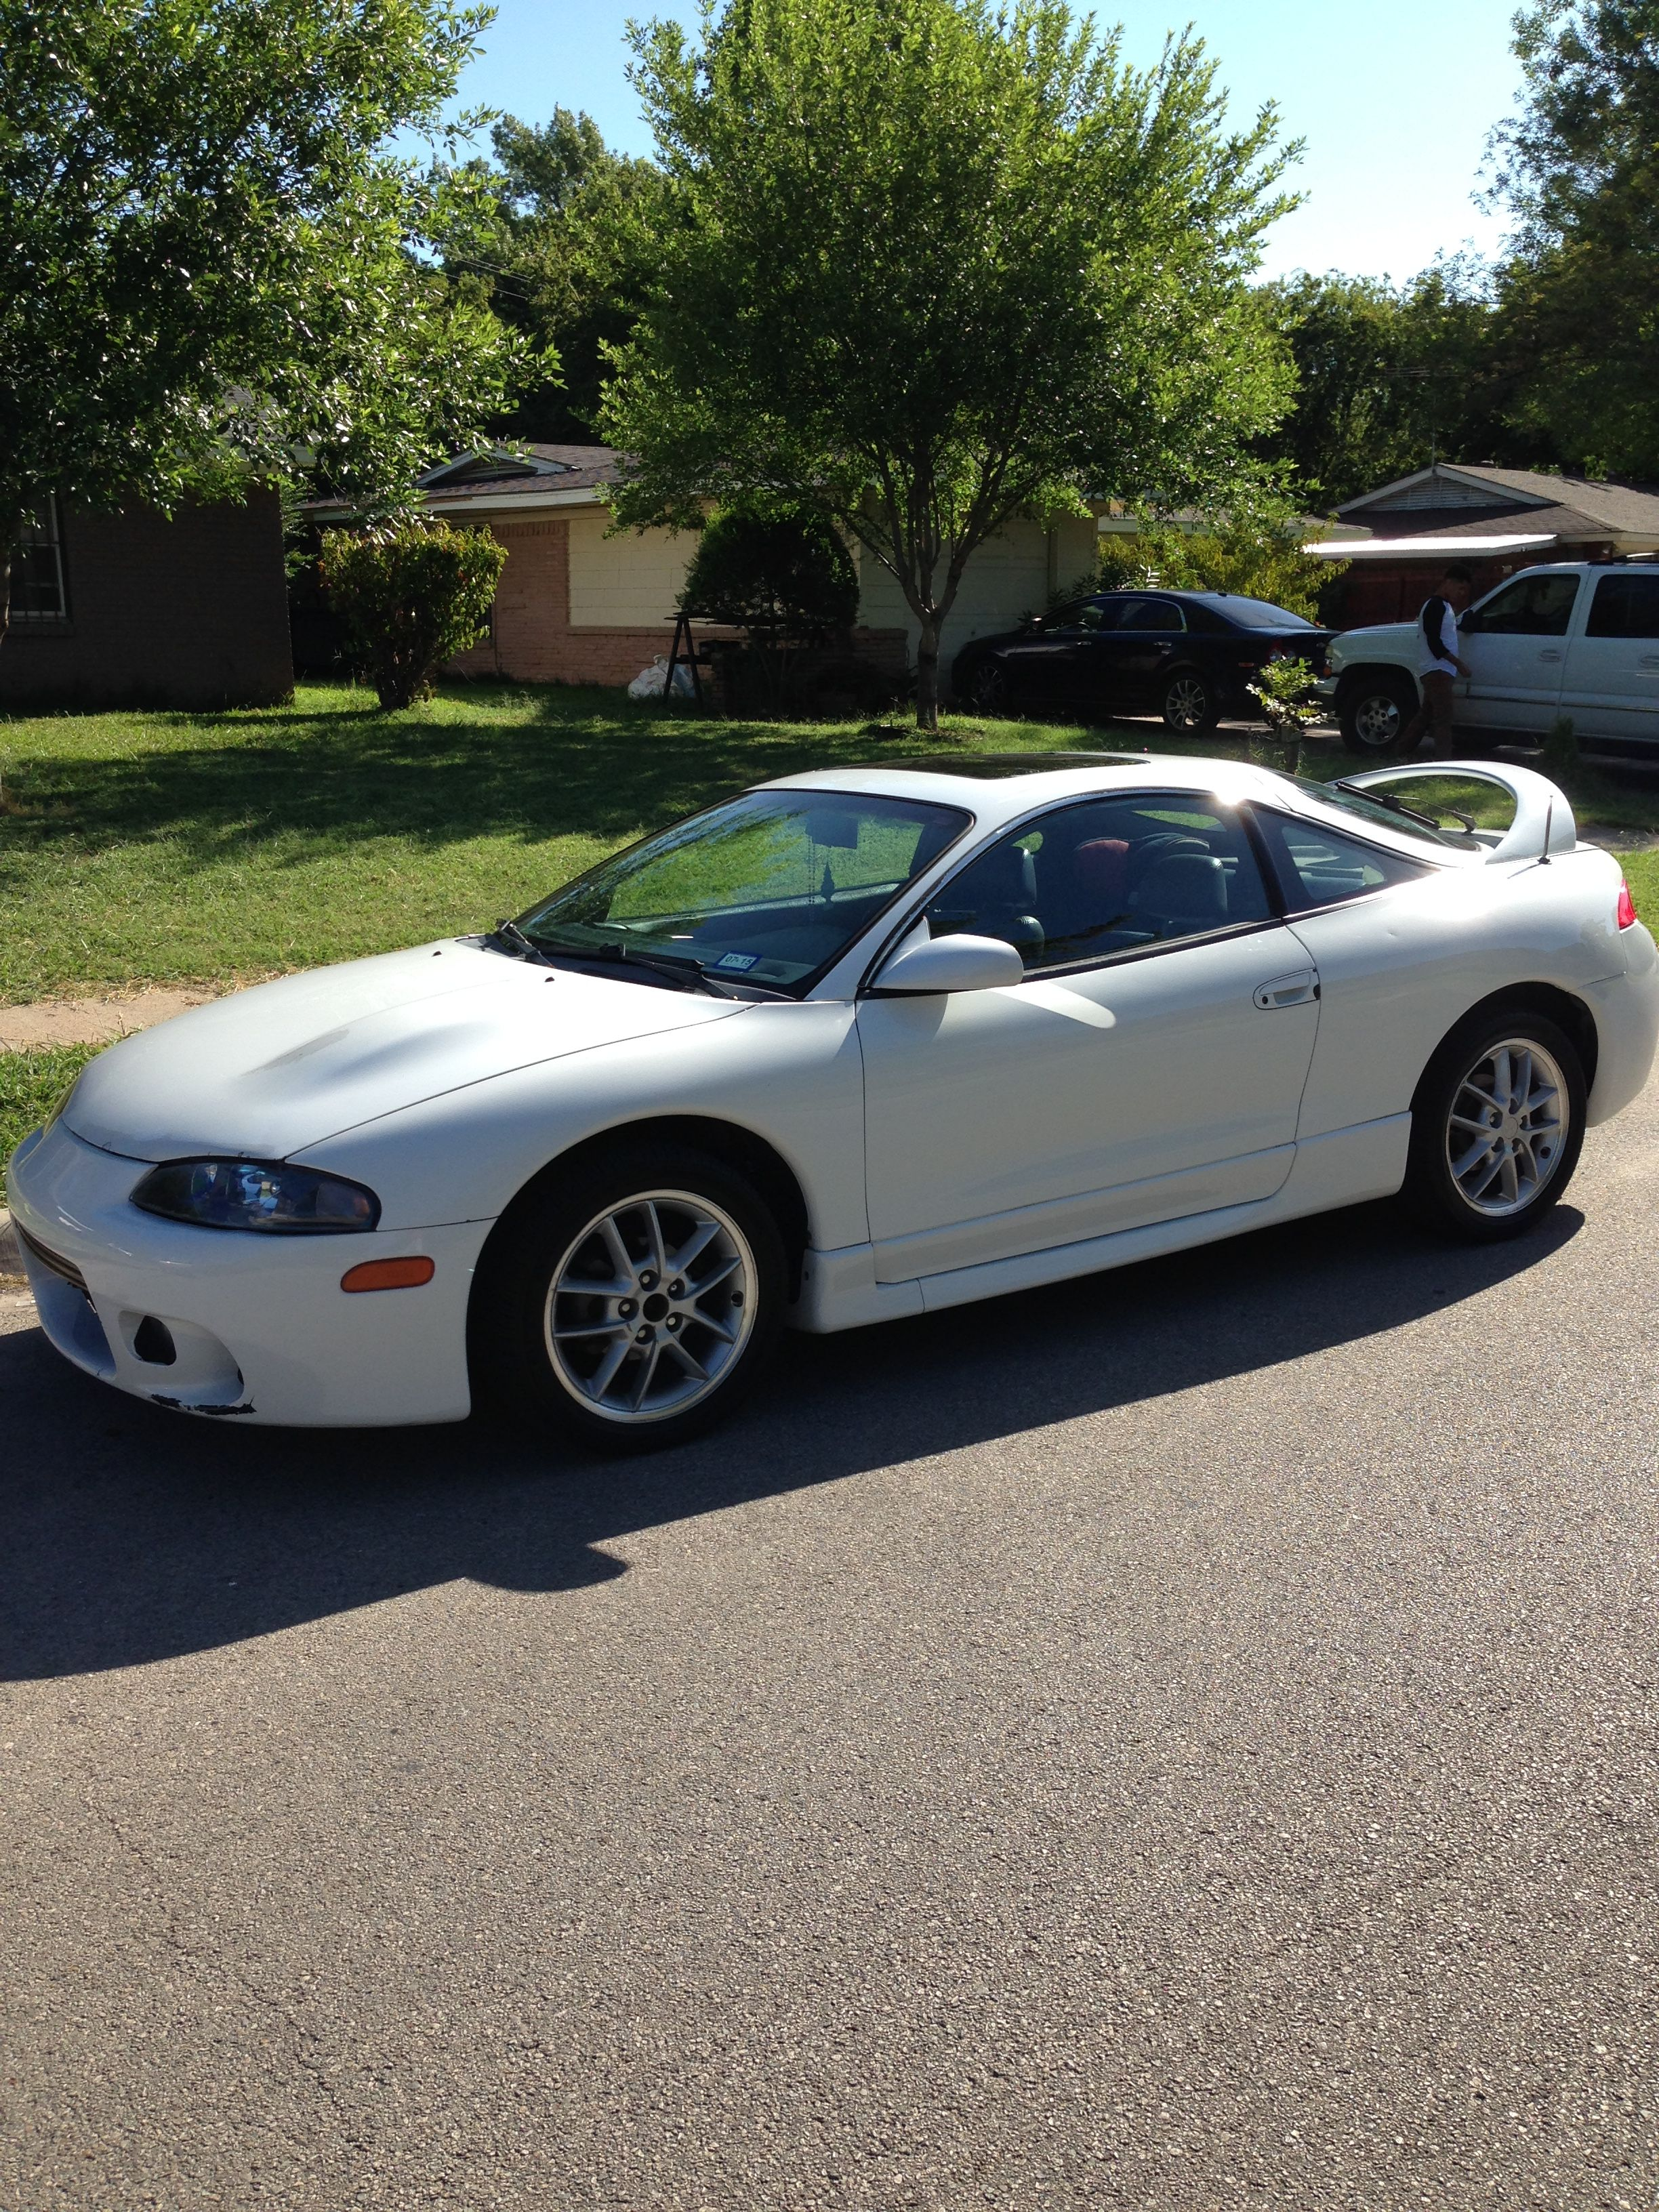 My 97 eclipse GST with GSX wheels just got done washing and waxing it